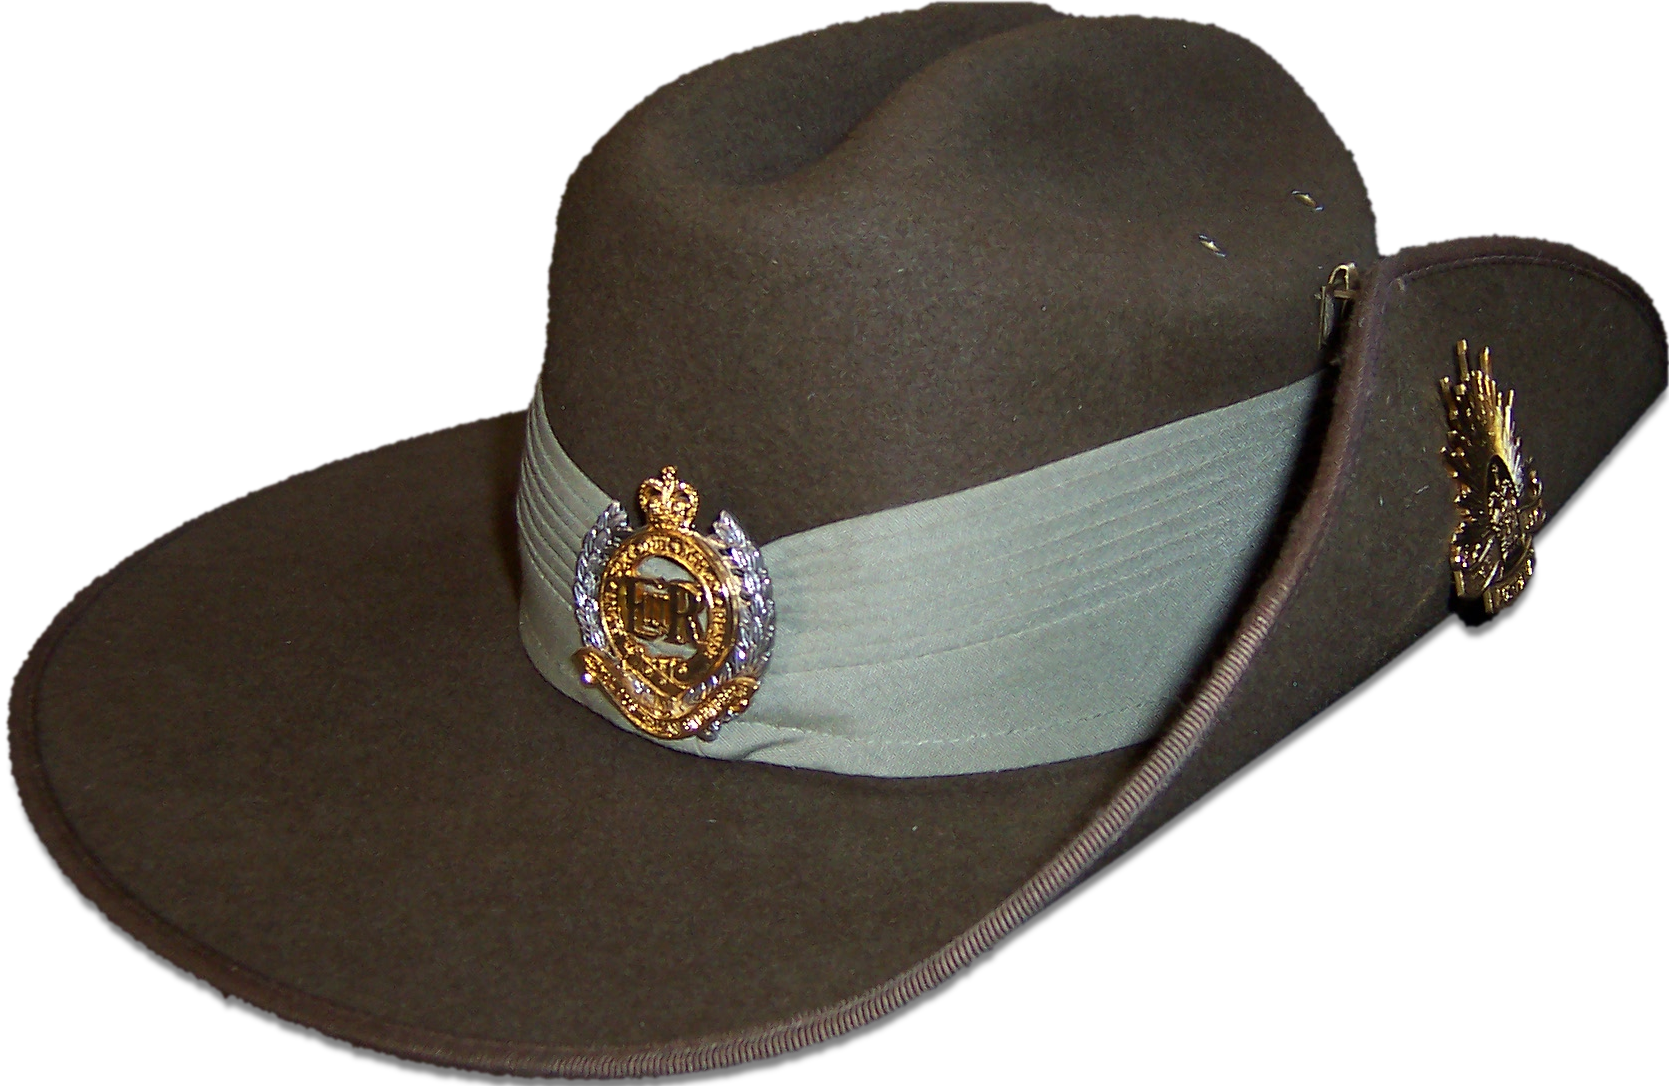 e529bf4b9d6 Slouch hat - Wikiwand